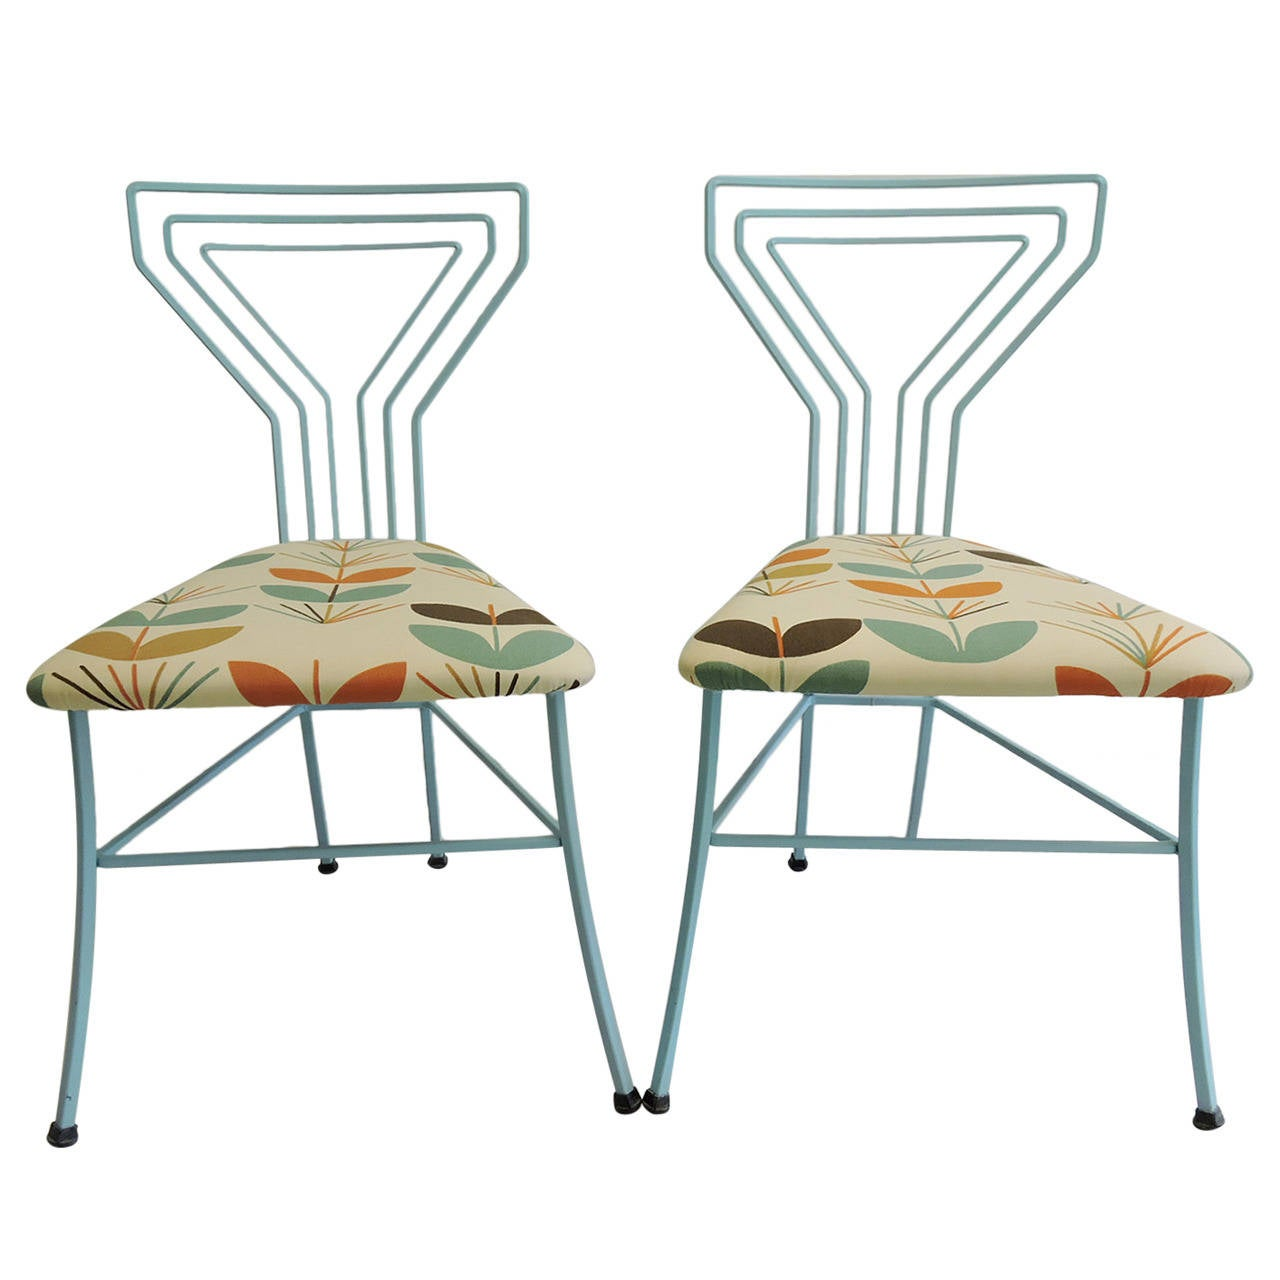 id f wrought iron kitchen chairs Pair of Modern Upholstered Seat Martini Glass Wrought Iron Kitchen Chairs 1